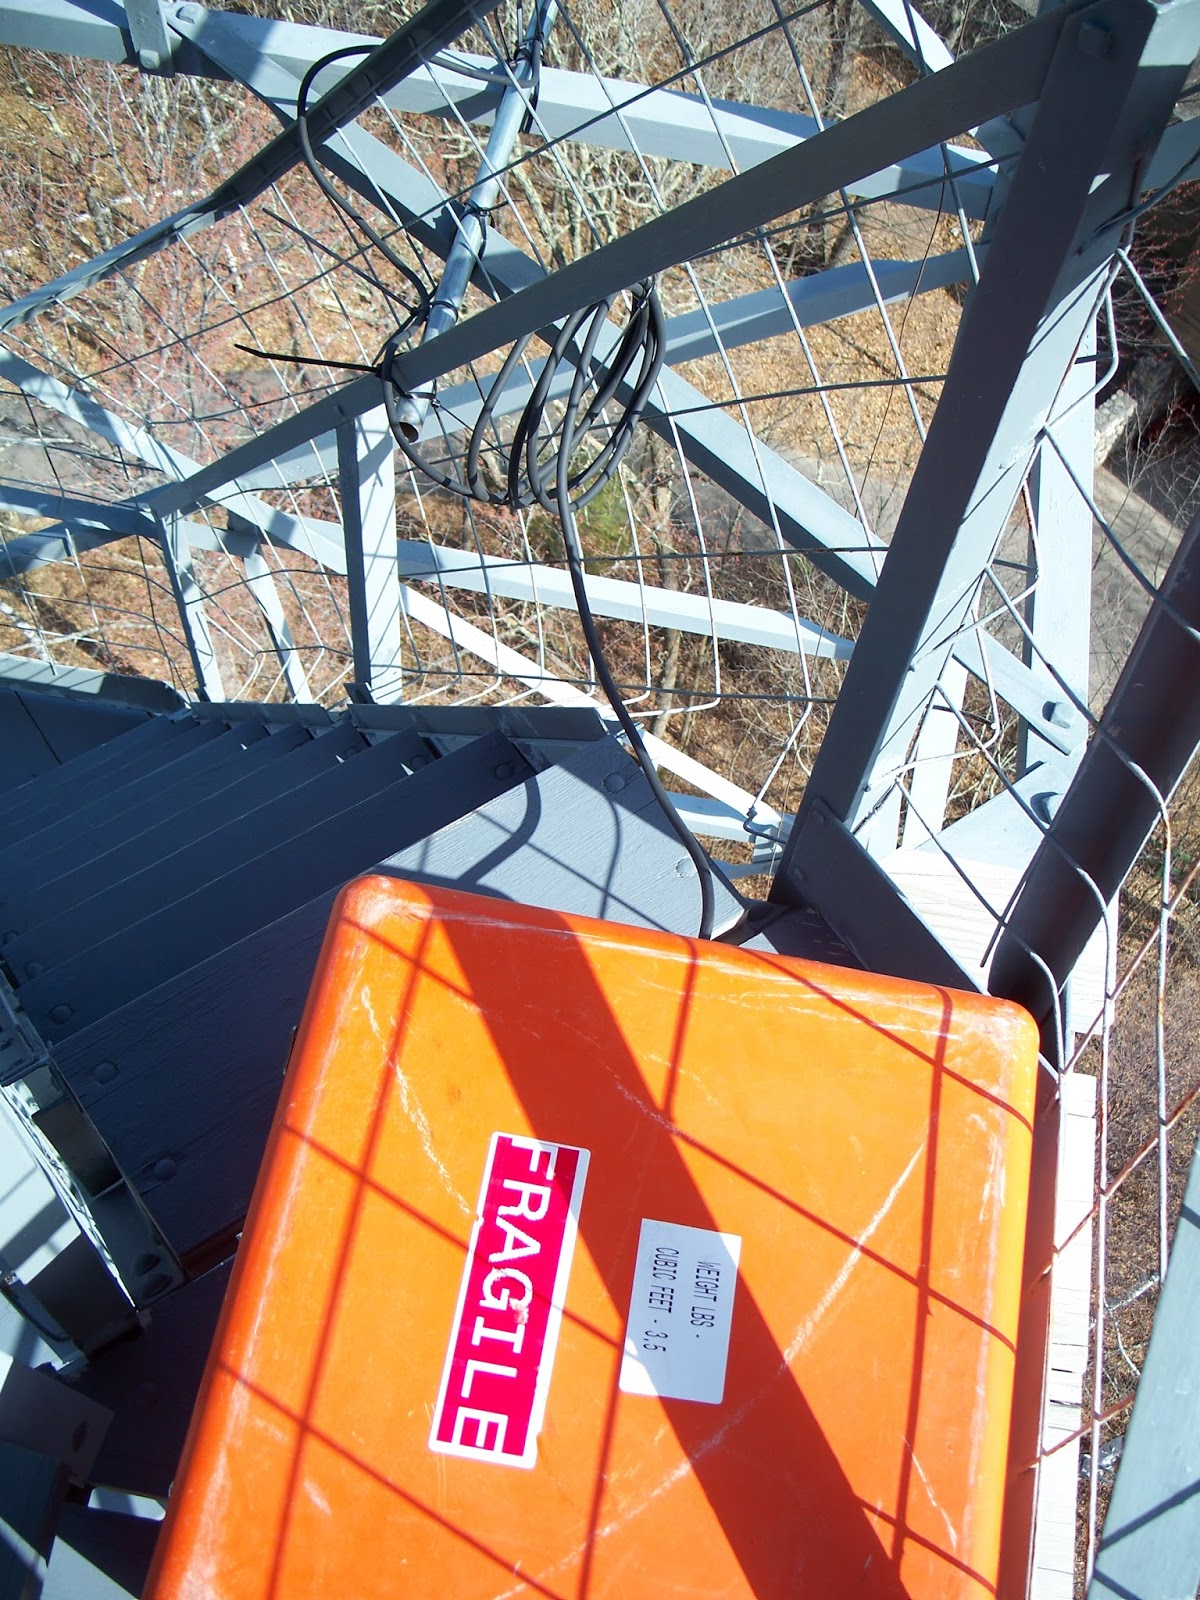 Minnesota's Historical Fire Lookout Towers: Towers and tower